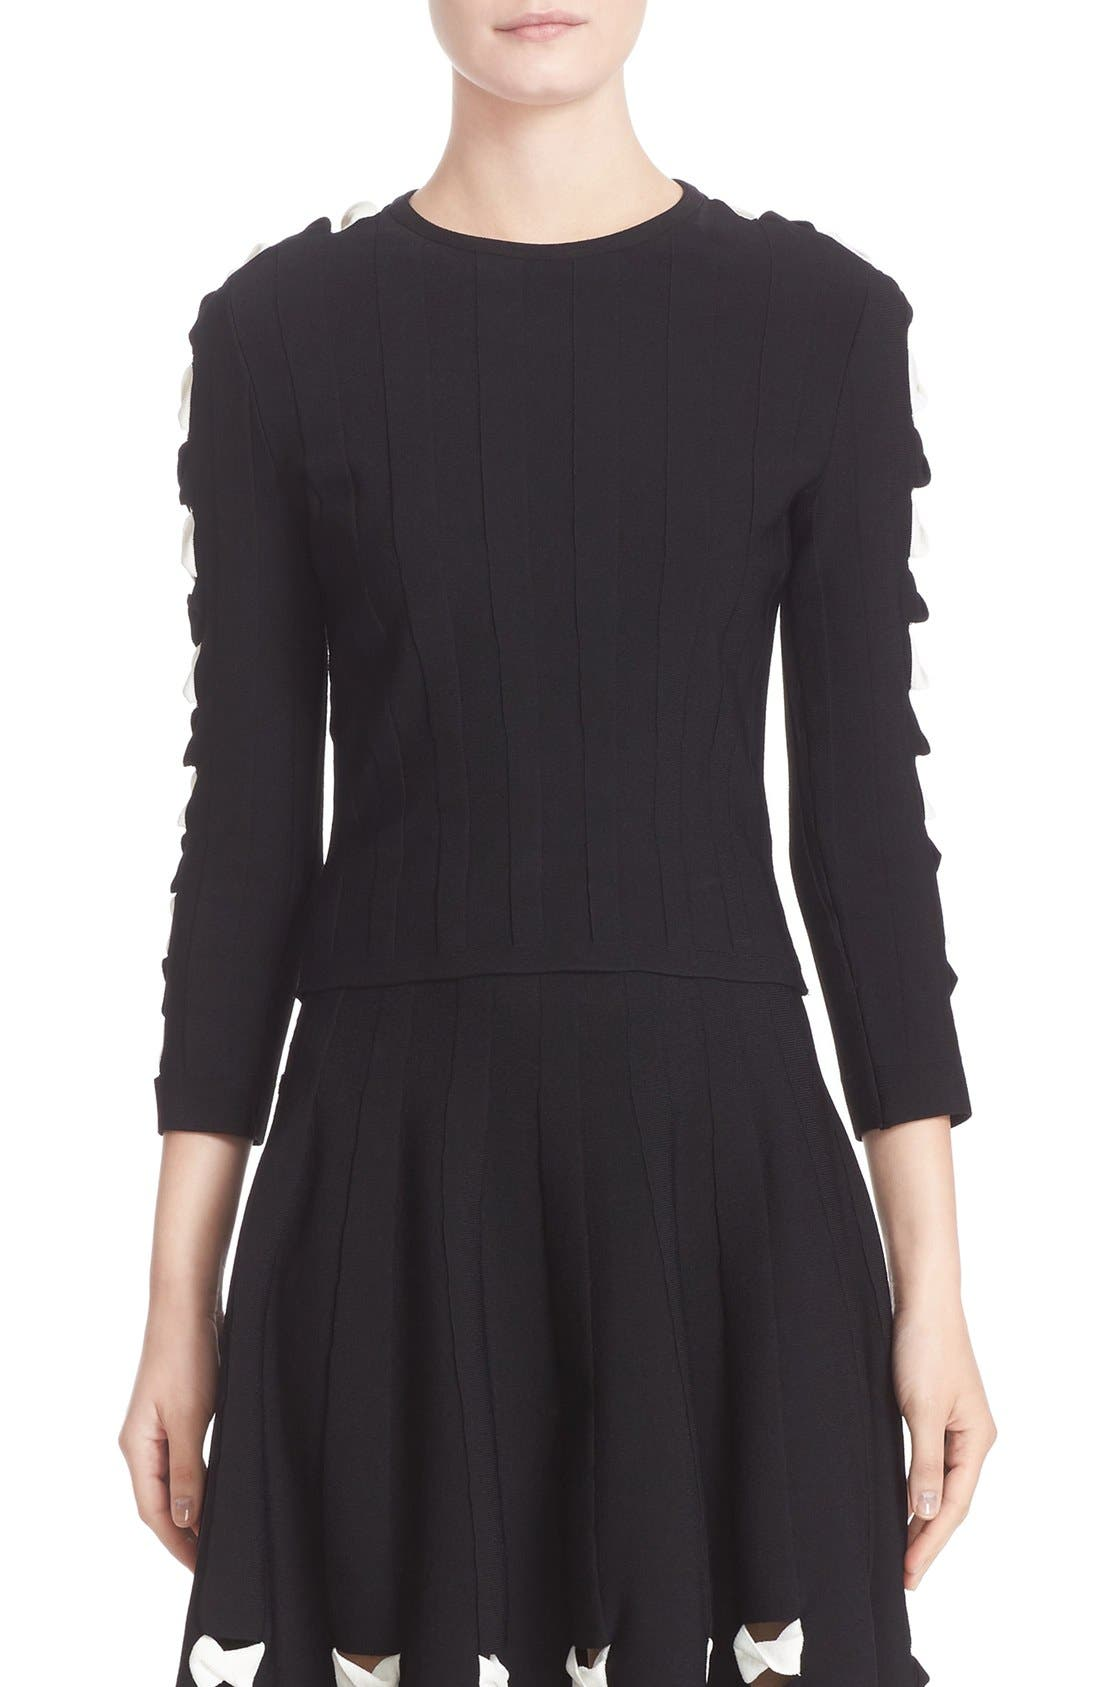 Main Image - Alexander McQueen Twisted Cutout Knit Top